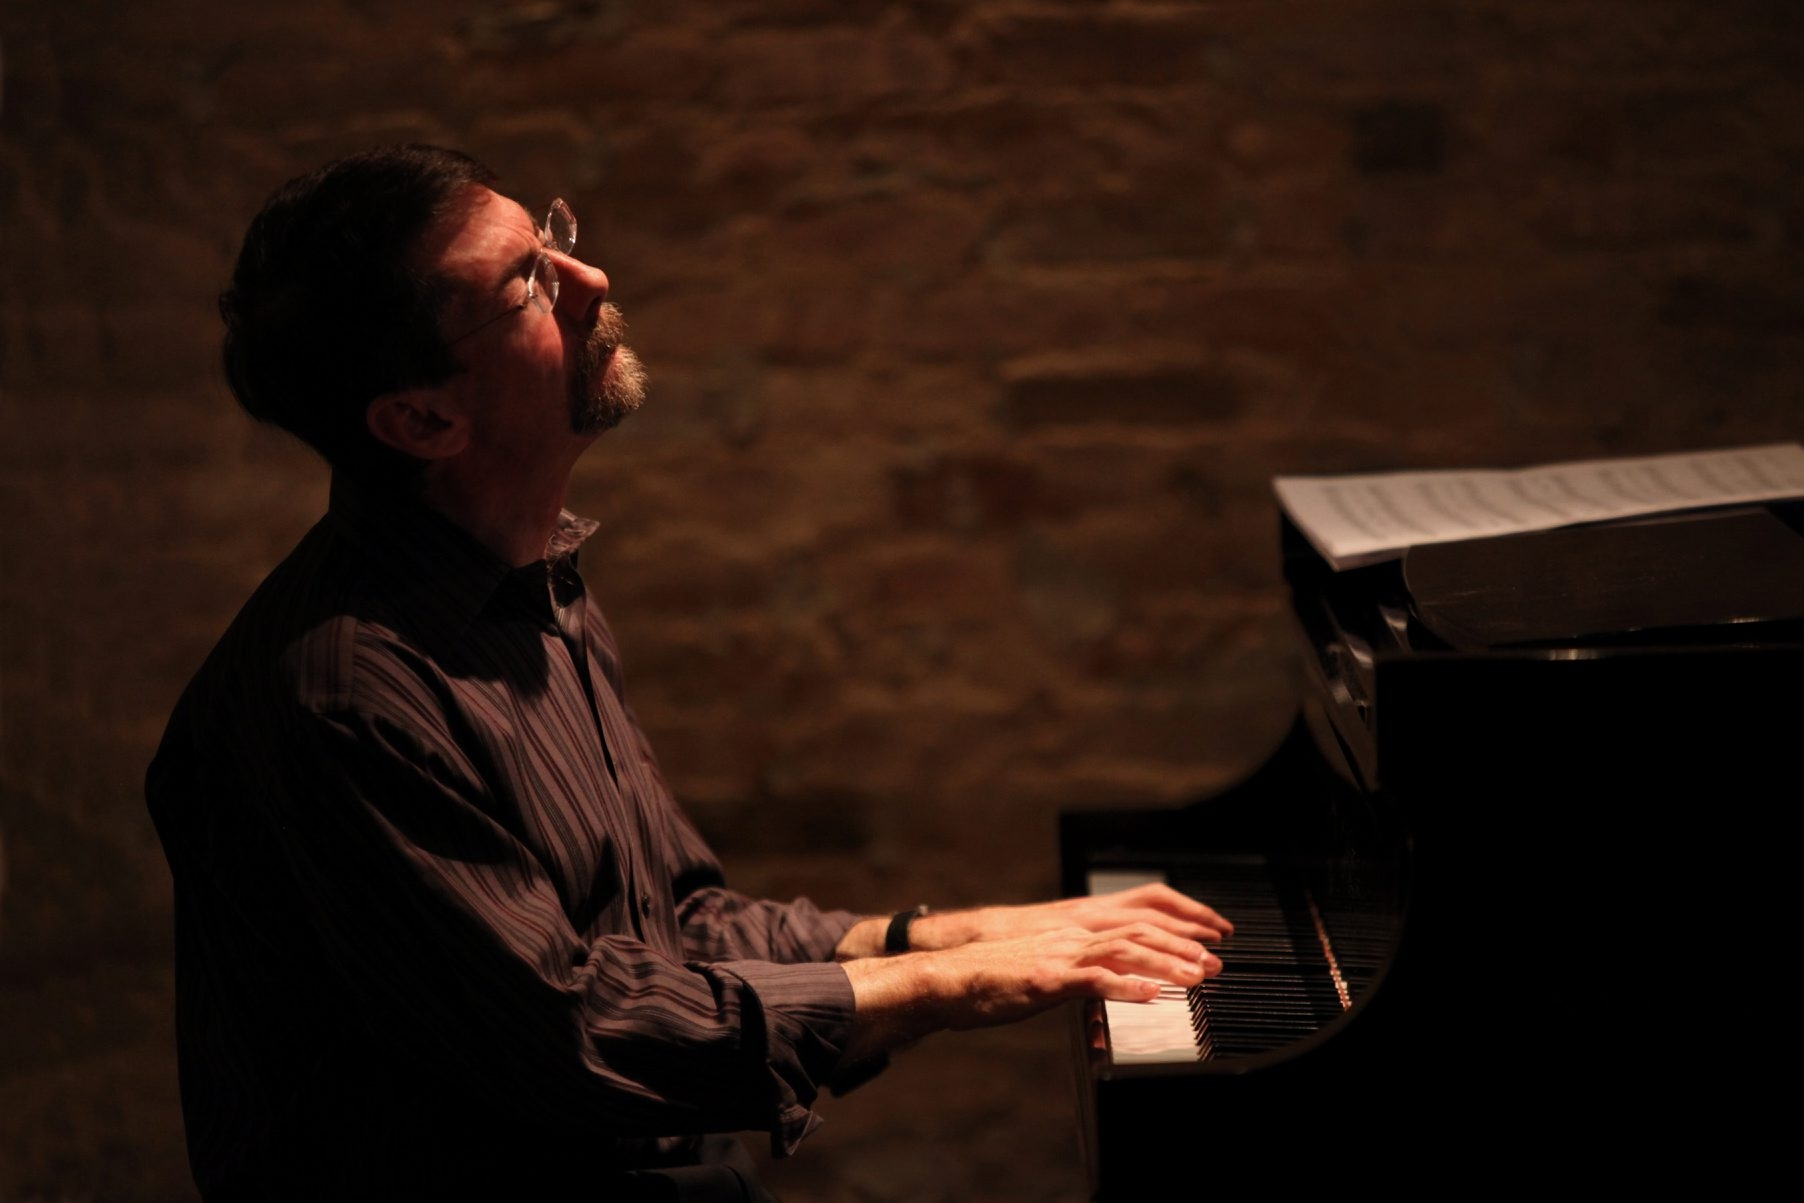 The Fred Hersch Trio performs at 8 p.m. Saturday in the Albright-Knox Art Gallery.